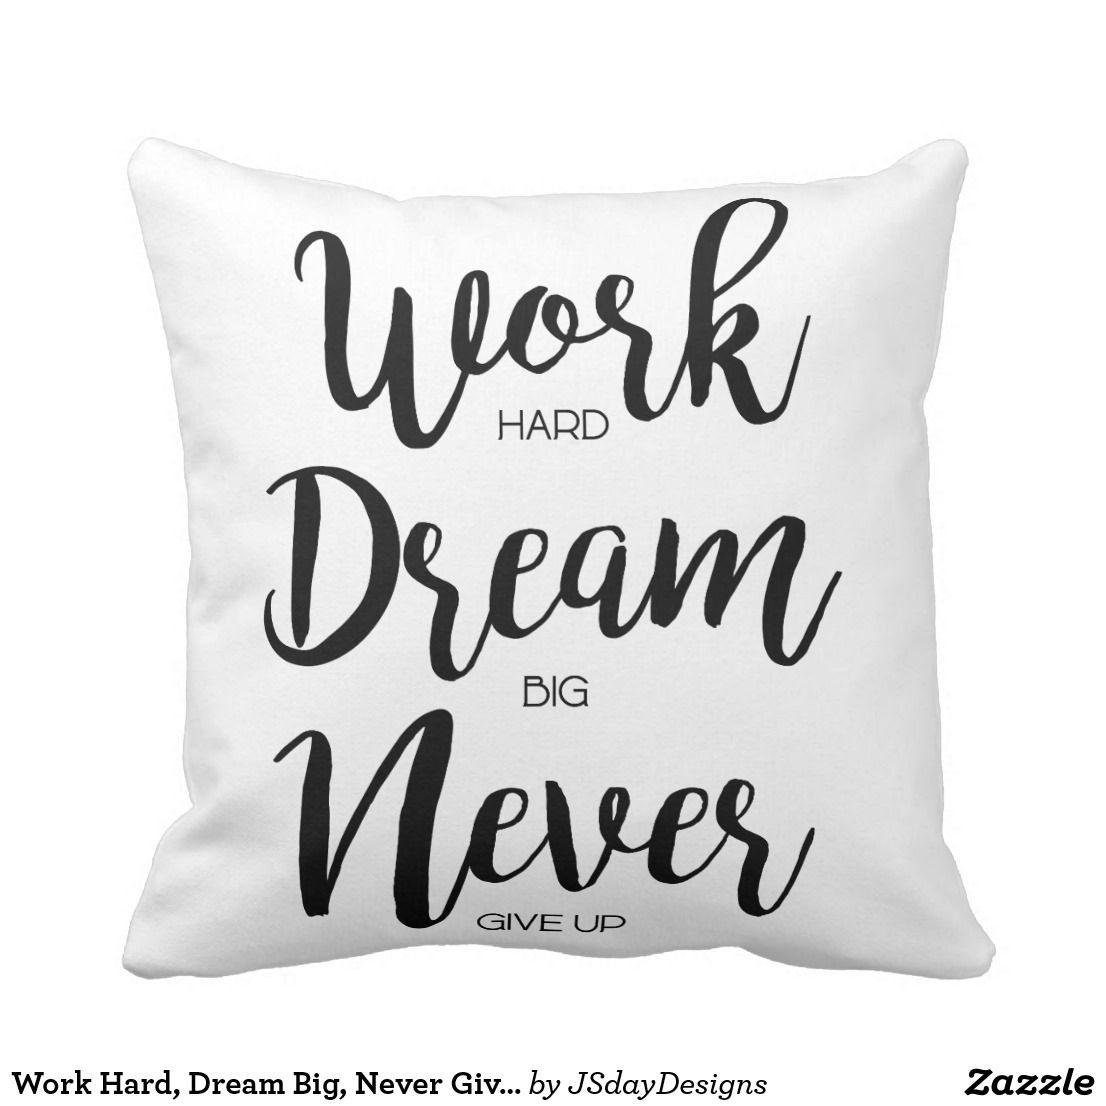 Work Hard Dream Big Never Give Up Throw Pillow Zazzle Com In 2020 Throw Pillows Pillows Dream Big